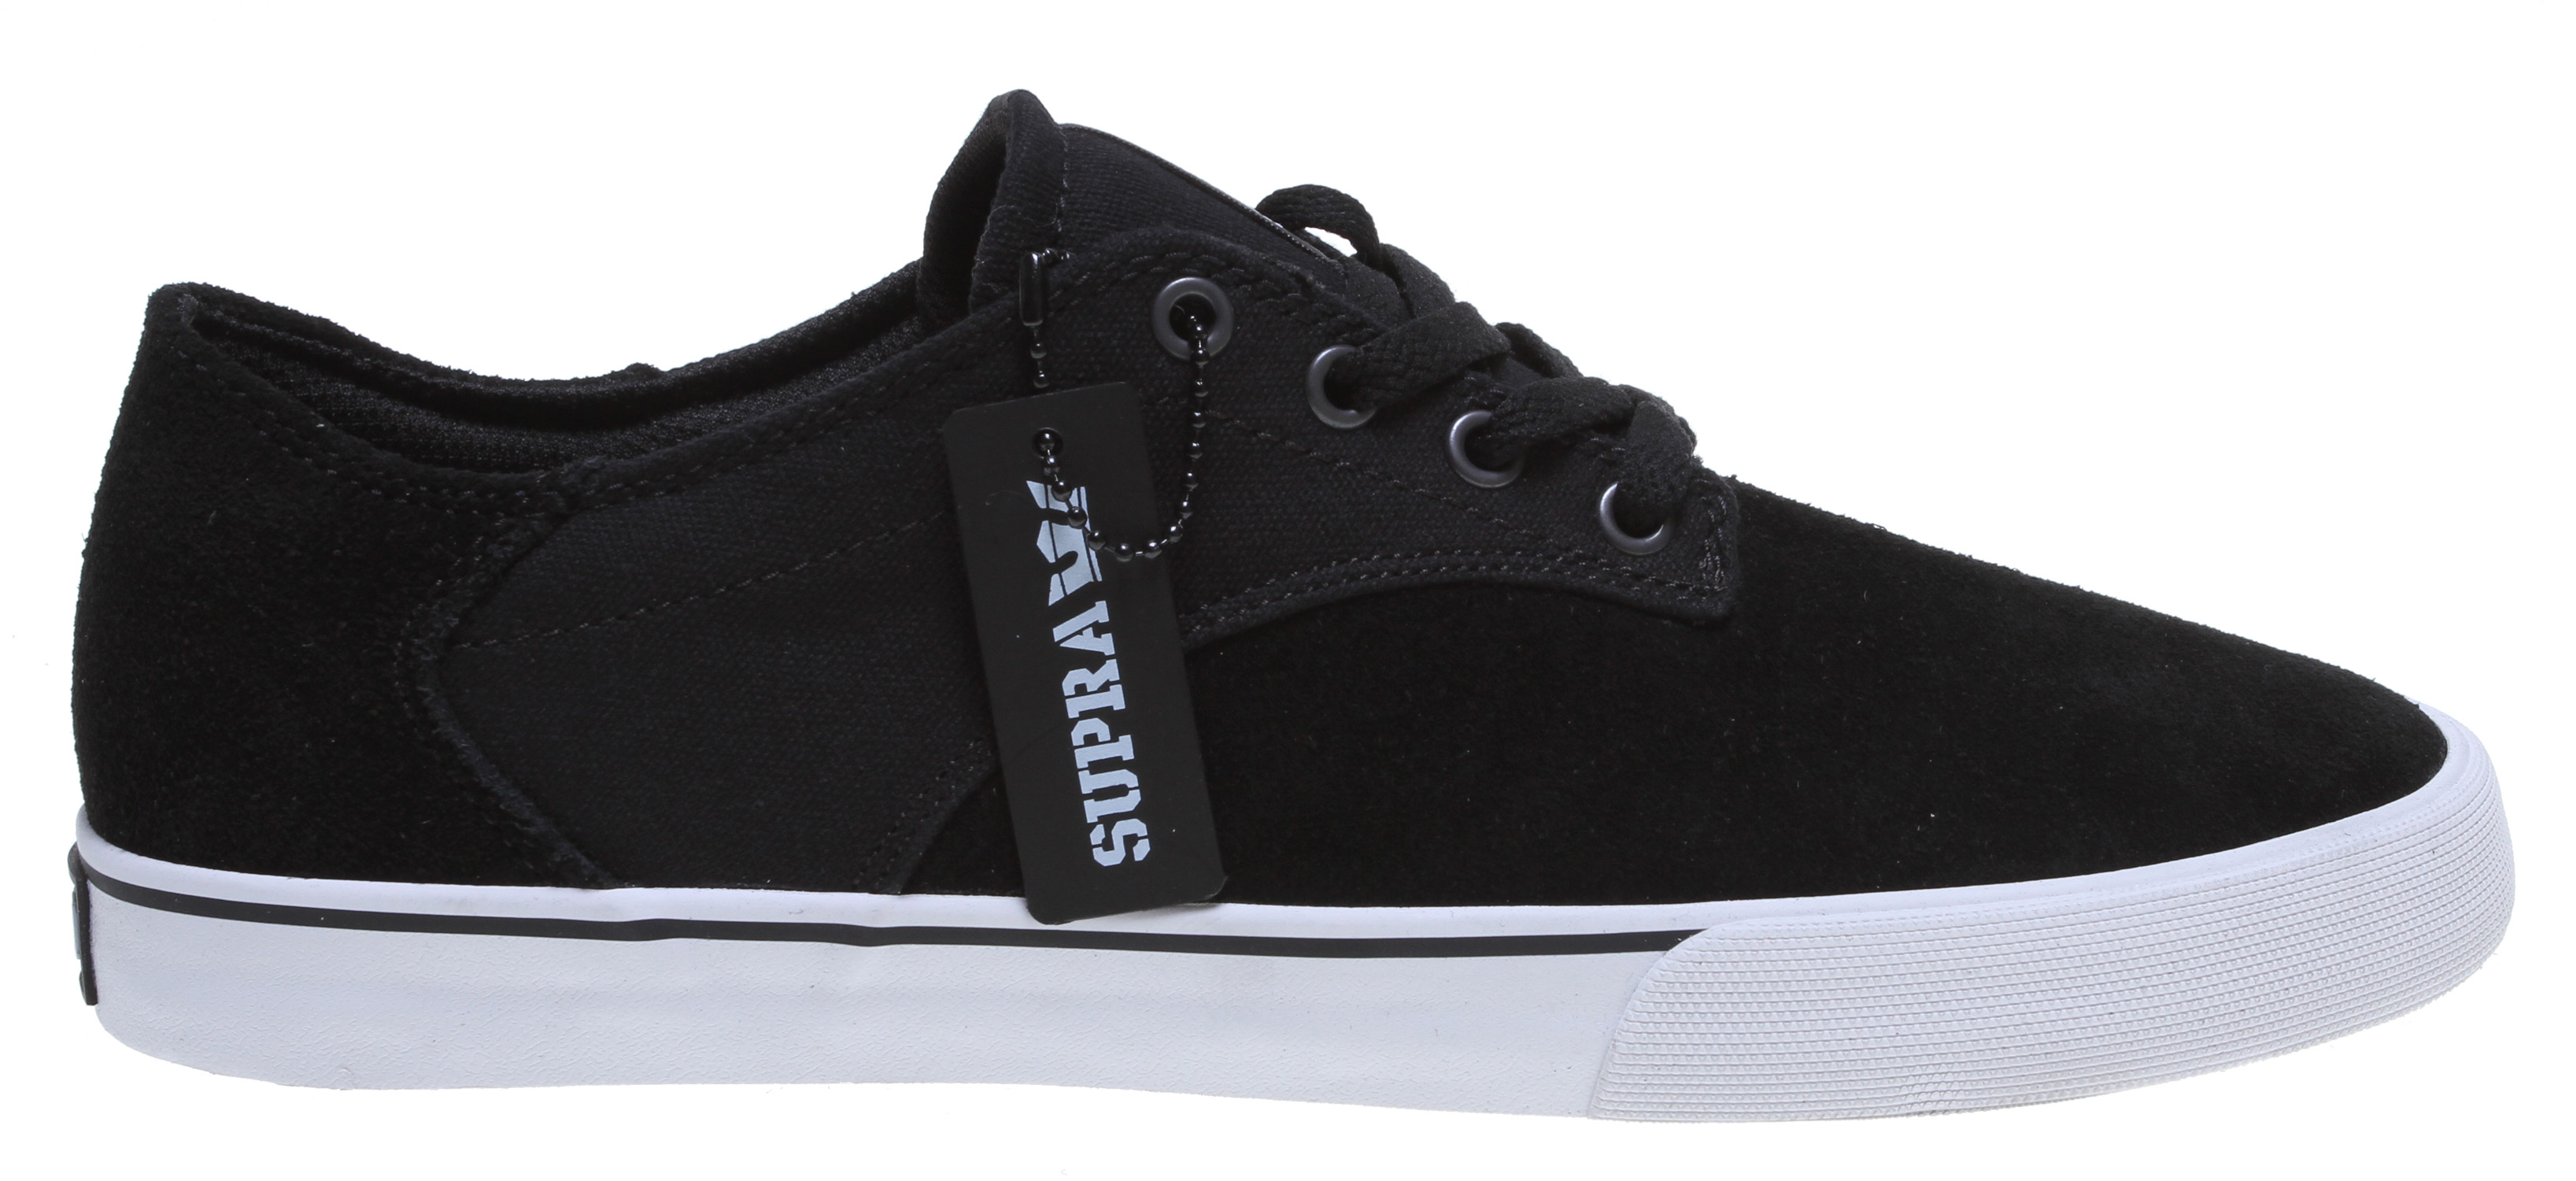 Skateboard The newest SUPRA team model is a modern take on the traditional low top, skate shoe design with a short eyestay and long vamp. The vulcanized sole provides excellent traction and superior board feel. - $41.95